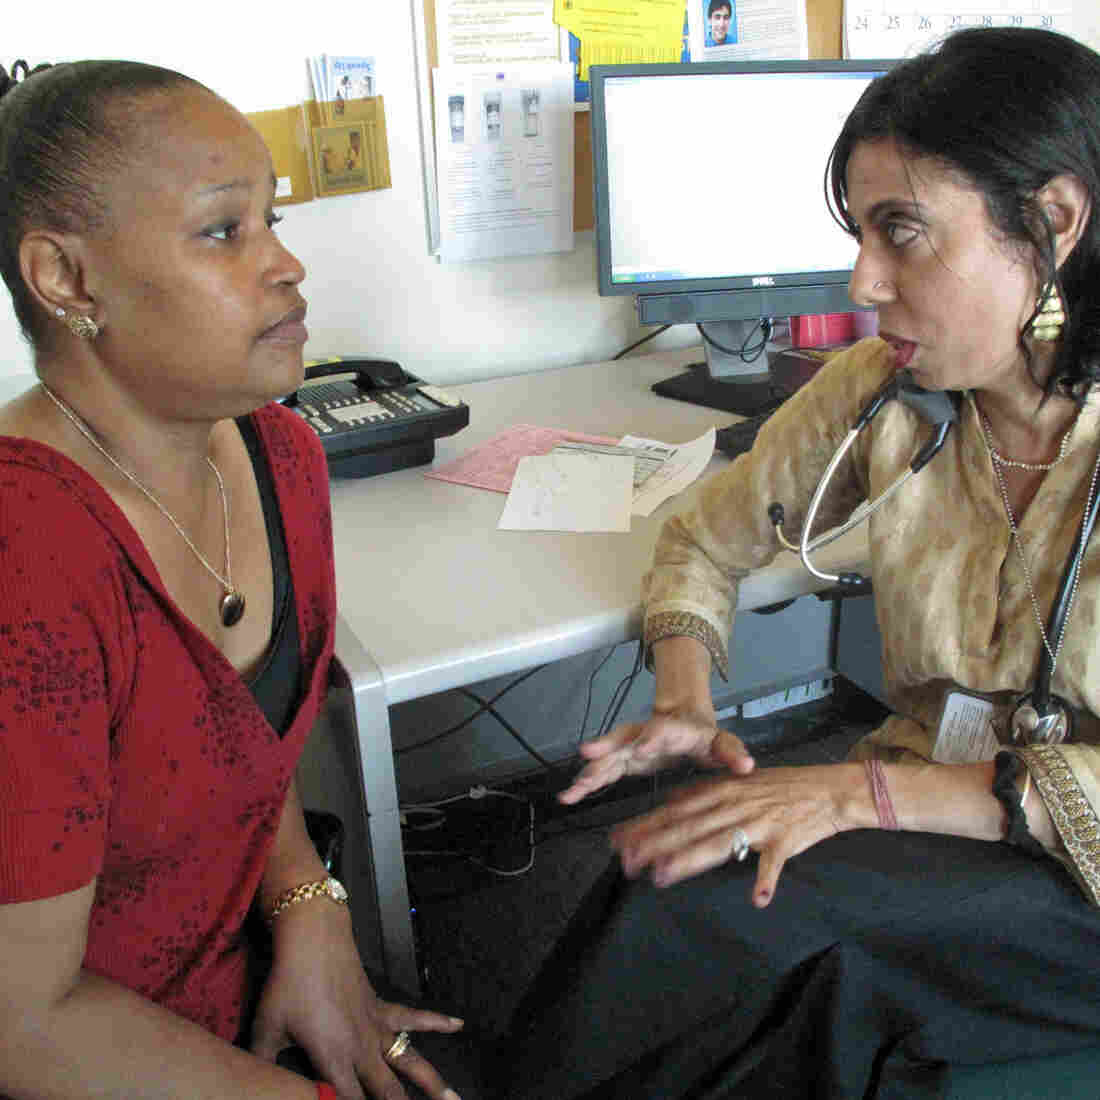 """HIV patient Darnell Hollie, 47, talks to her doctor Monica Gandhi (right) at San Francisco General Hospital. Her path from drug addict to model patient was """"a lot of work, but if you want it, it's there for you,"""" Hollie says."""